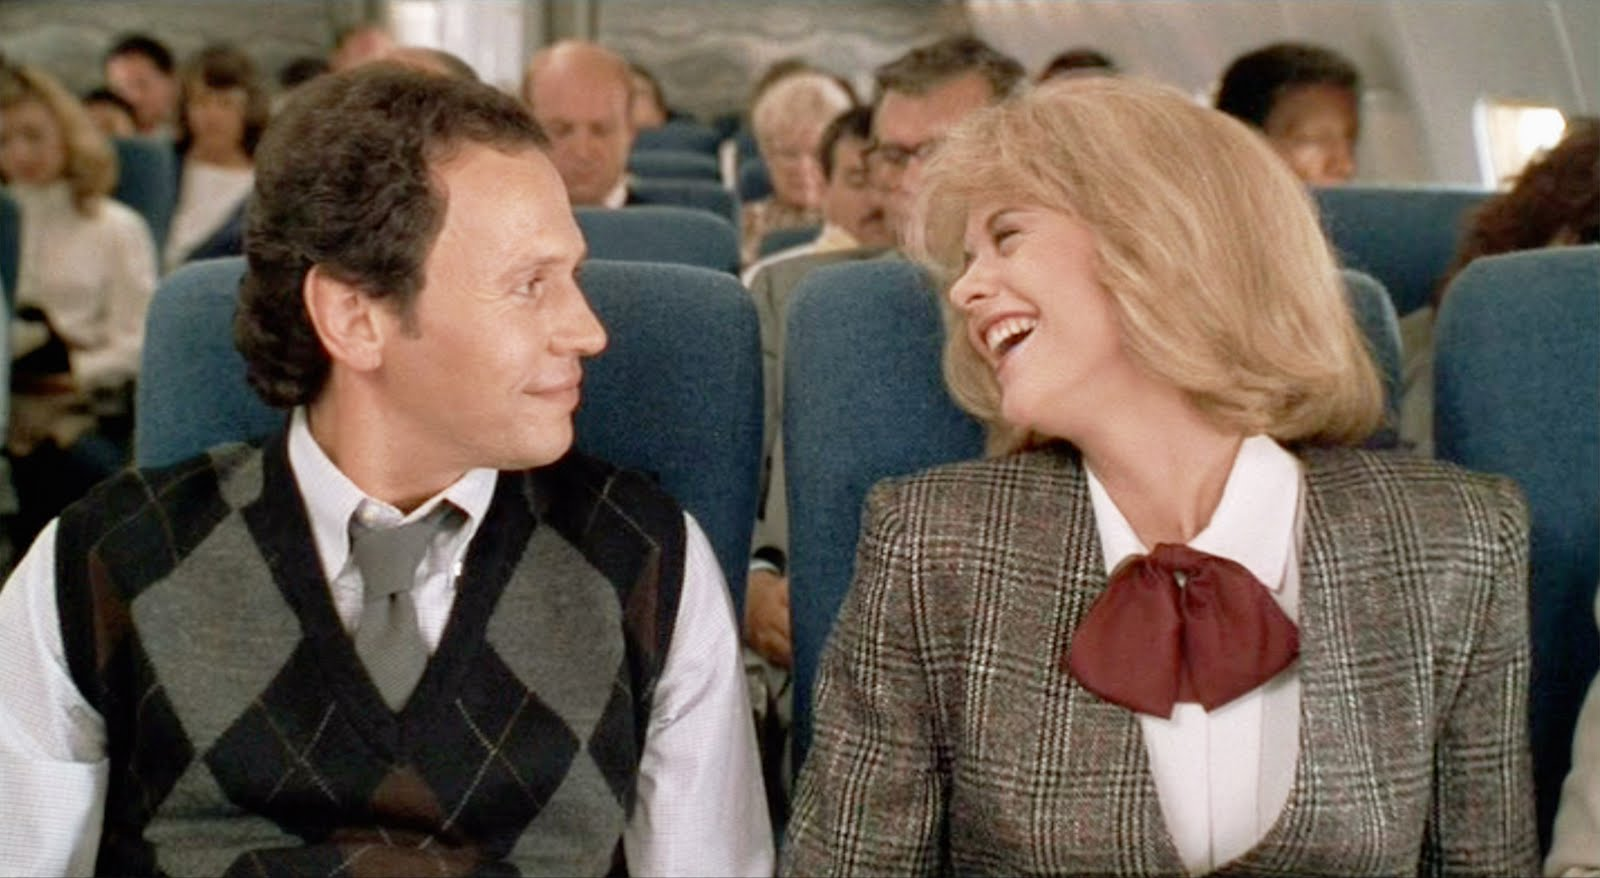 an analysis of the film when harry met sally Get all the details on when harry met sally: analysis description, analysis, and more, so you can understand the ins and outs of when harry met sally.